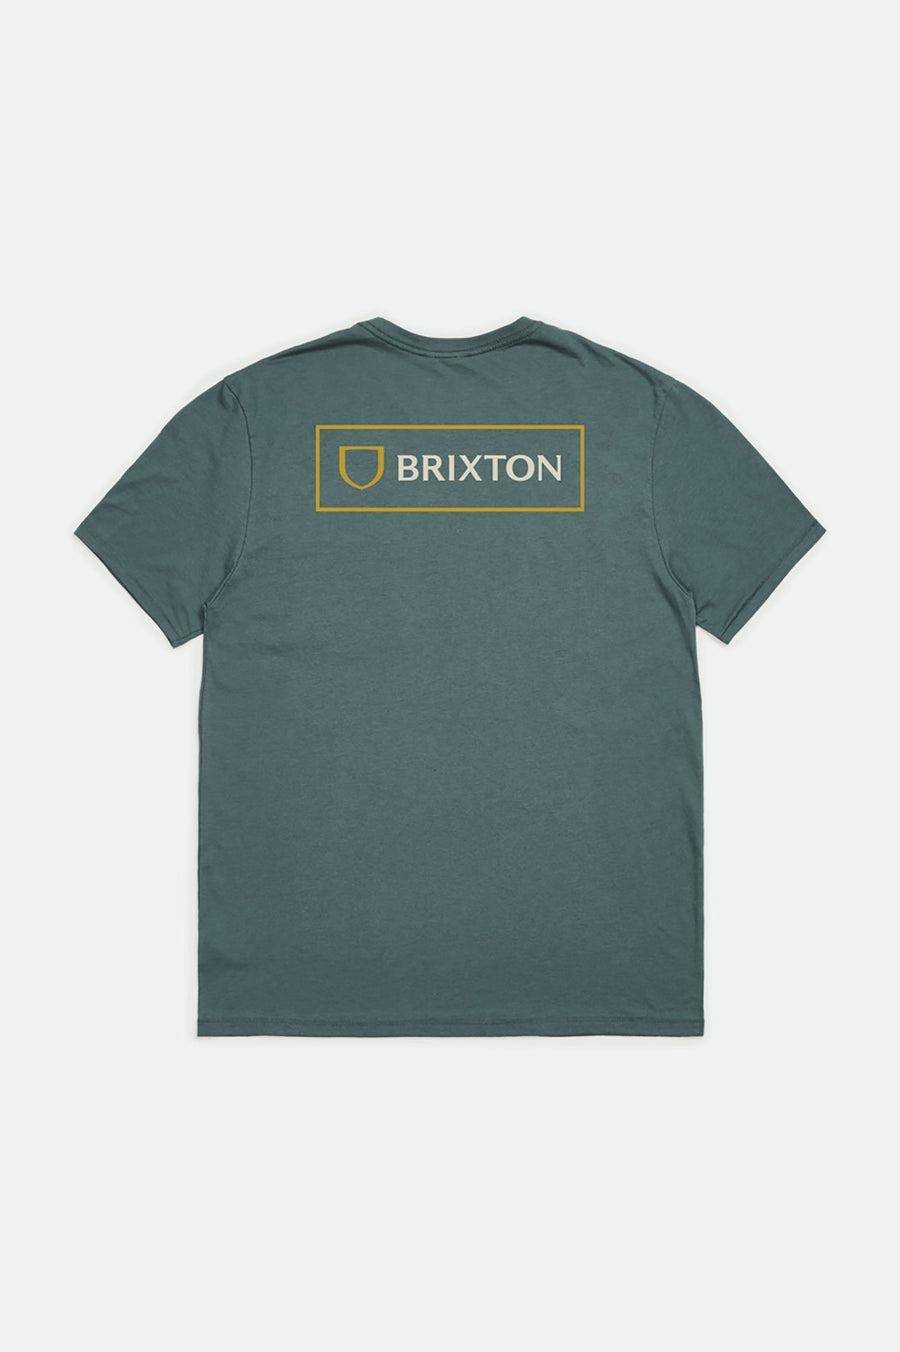 BRIXTON Alpha Block Tailored T-Shirt Silver Pine MENS APPAREL - Men's Short Sleeve T-Shirts Brixton M